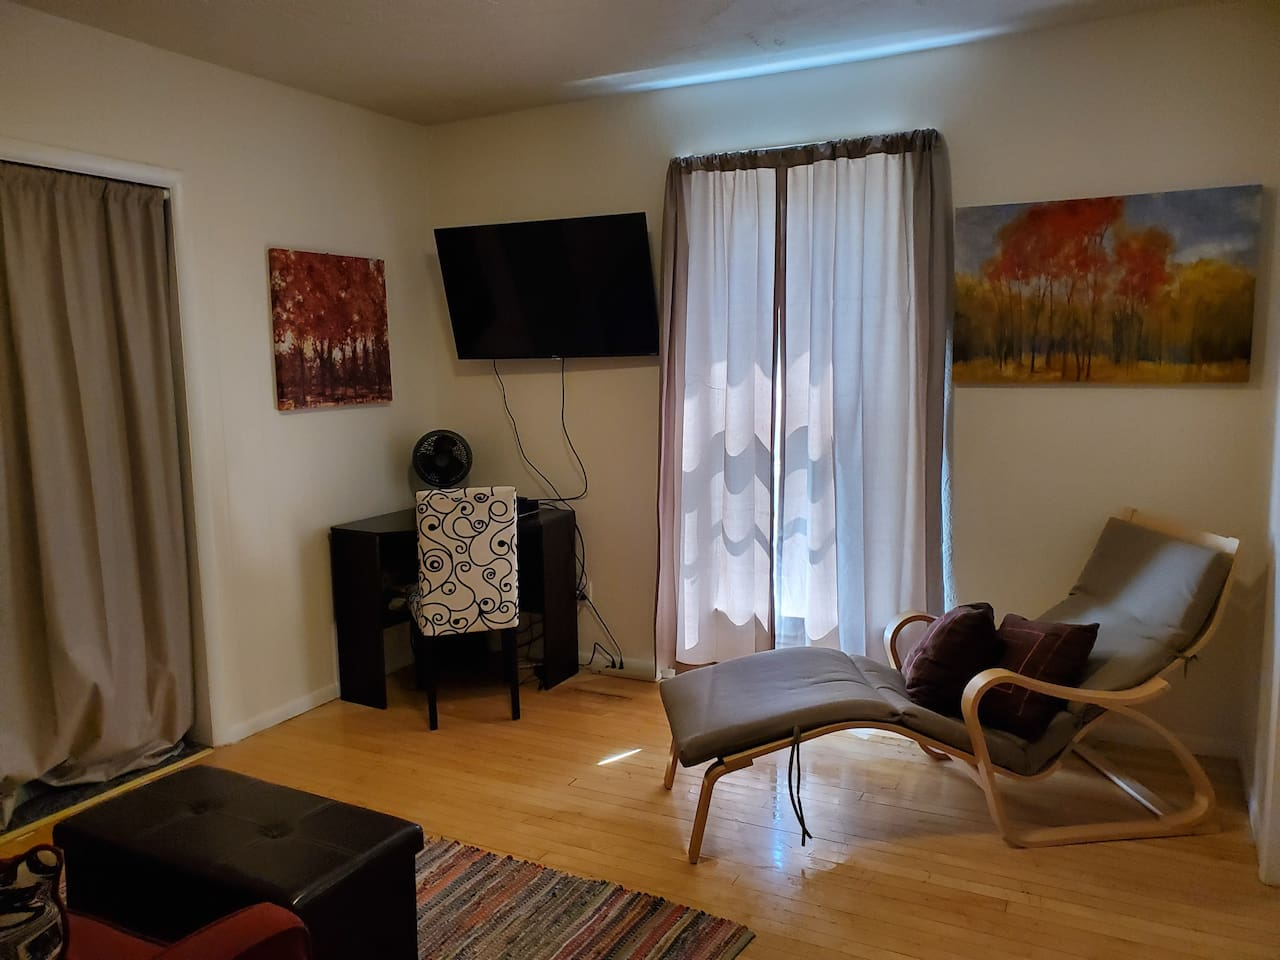 Comfortable living space with TV, WiFi, and working desk.  South facing window with view of the South Hills - easy access to biking and hiking trails.